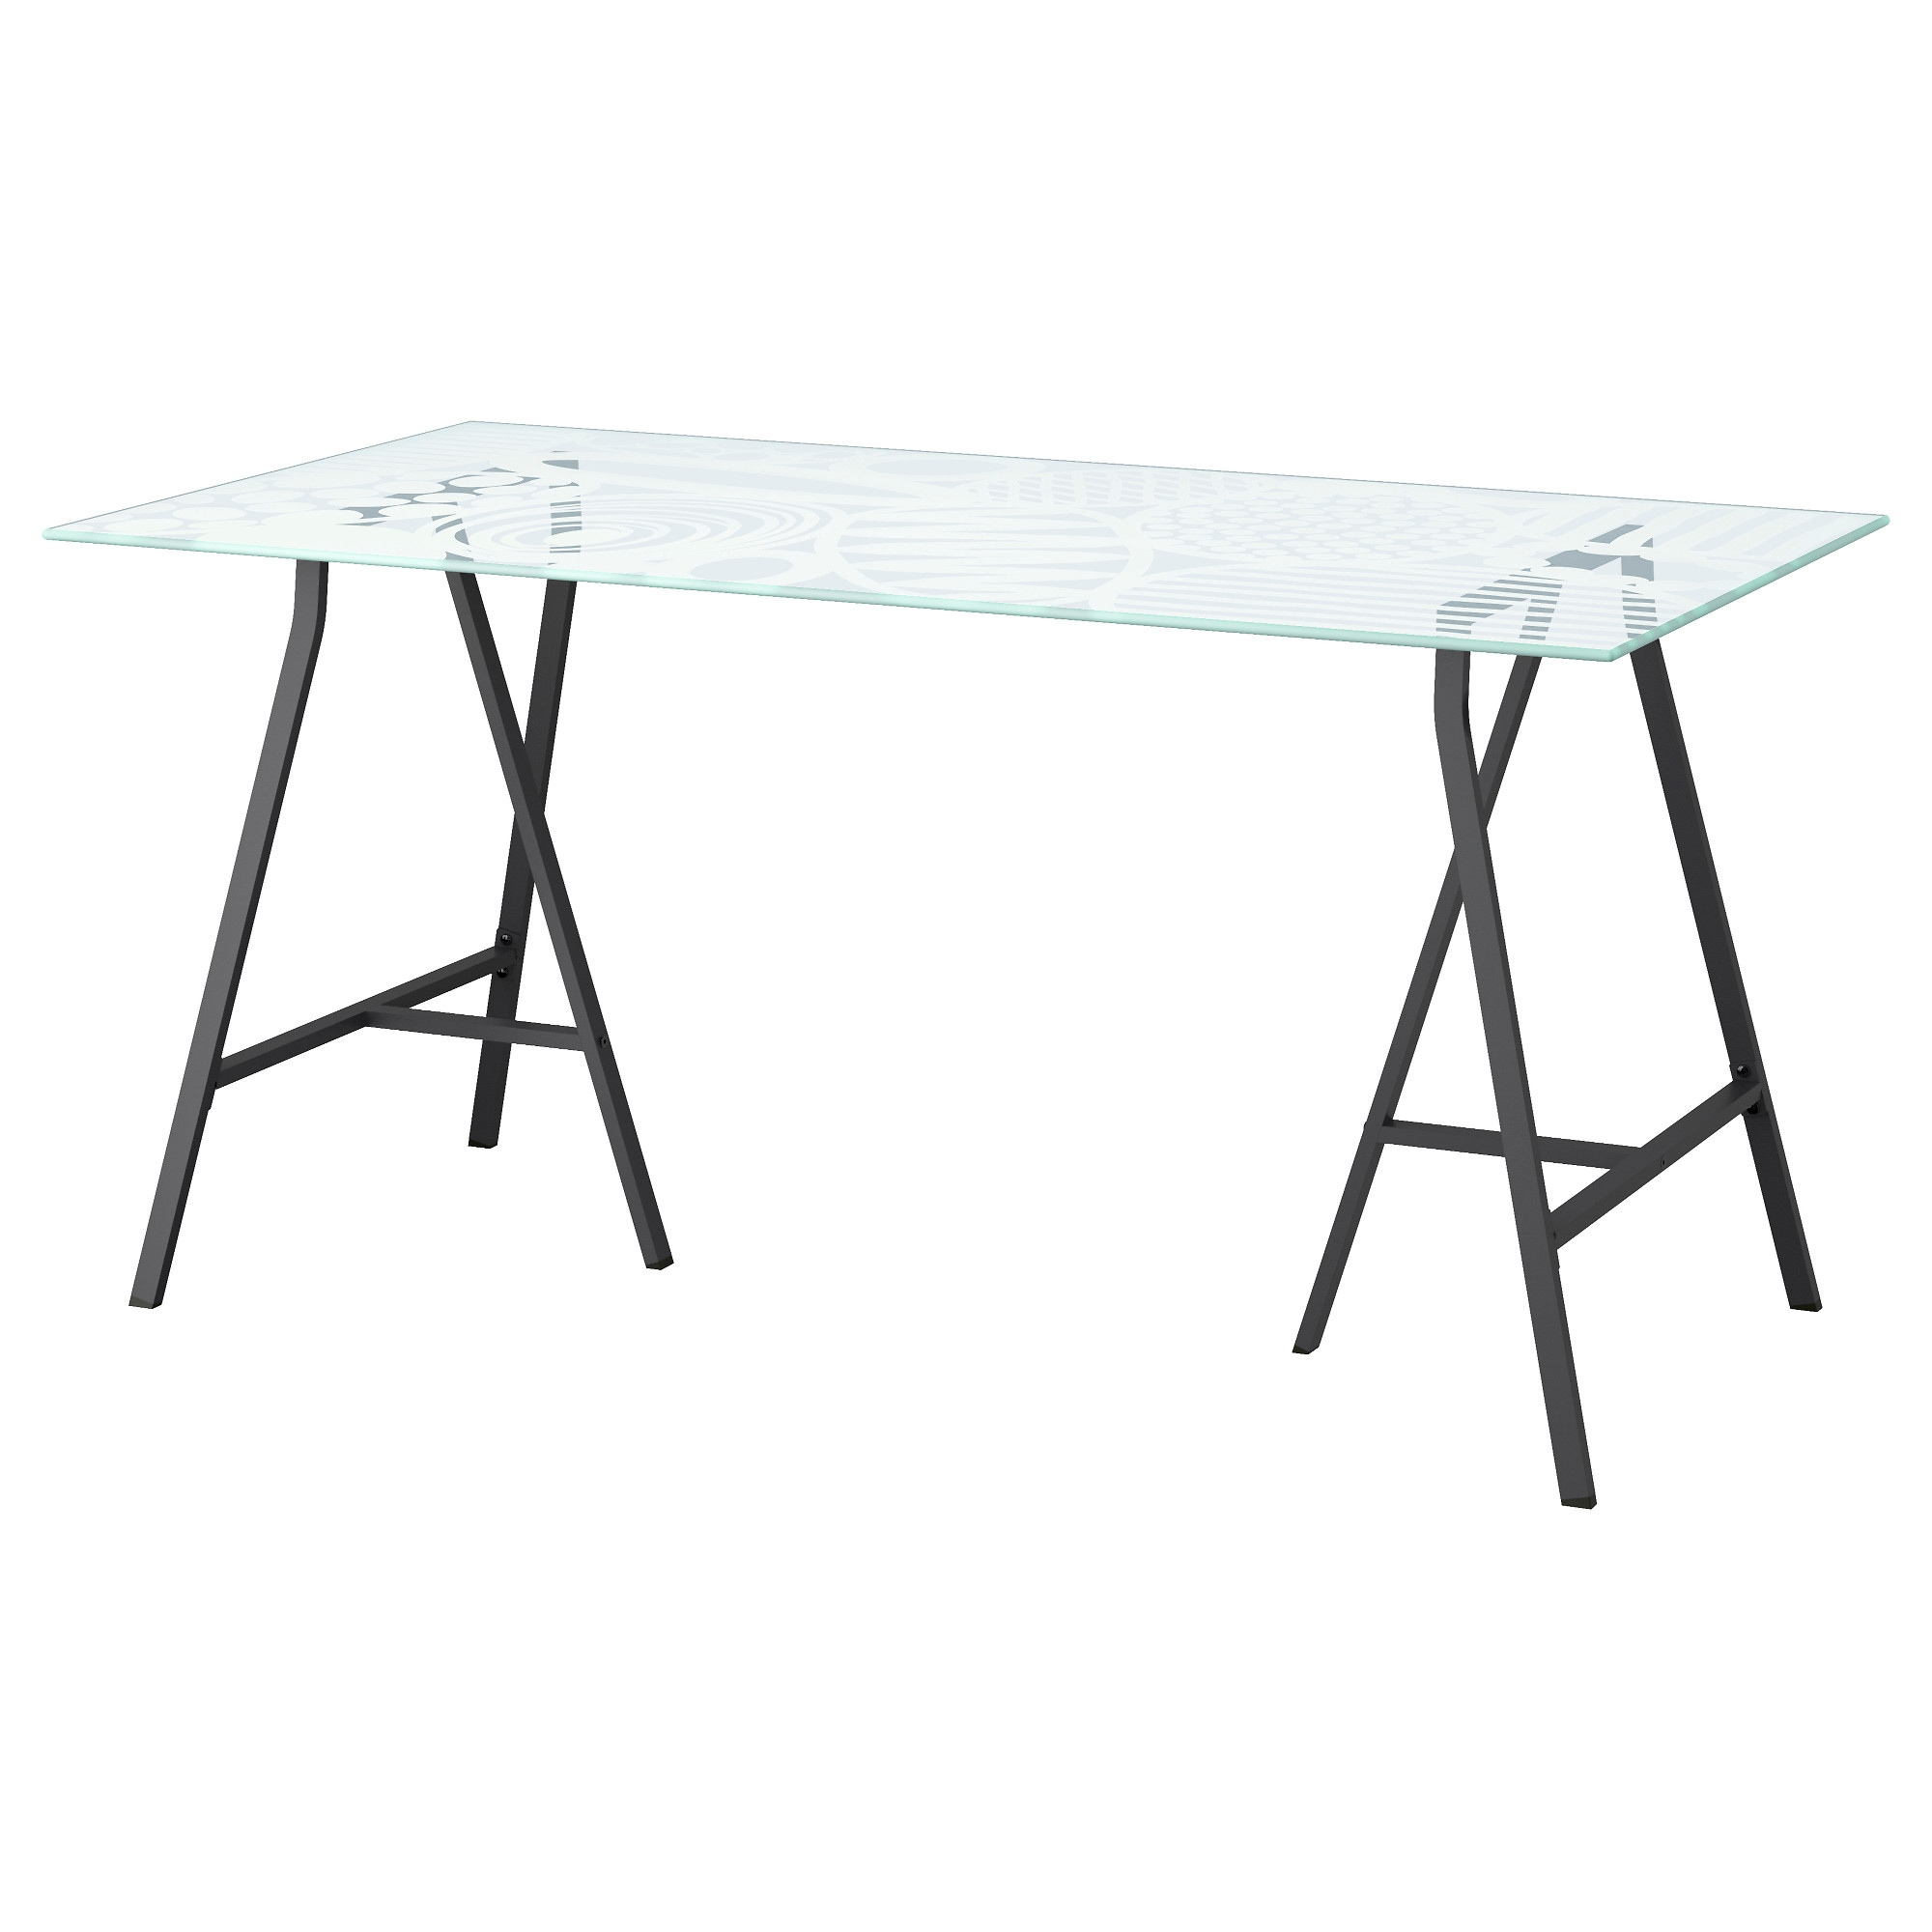 Ikea glass table desk - Glasholm Lerberg Table Glass Egg Pattern Gray Length 58 1 4